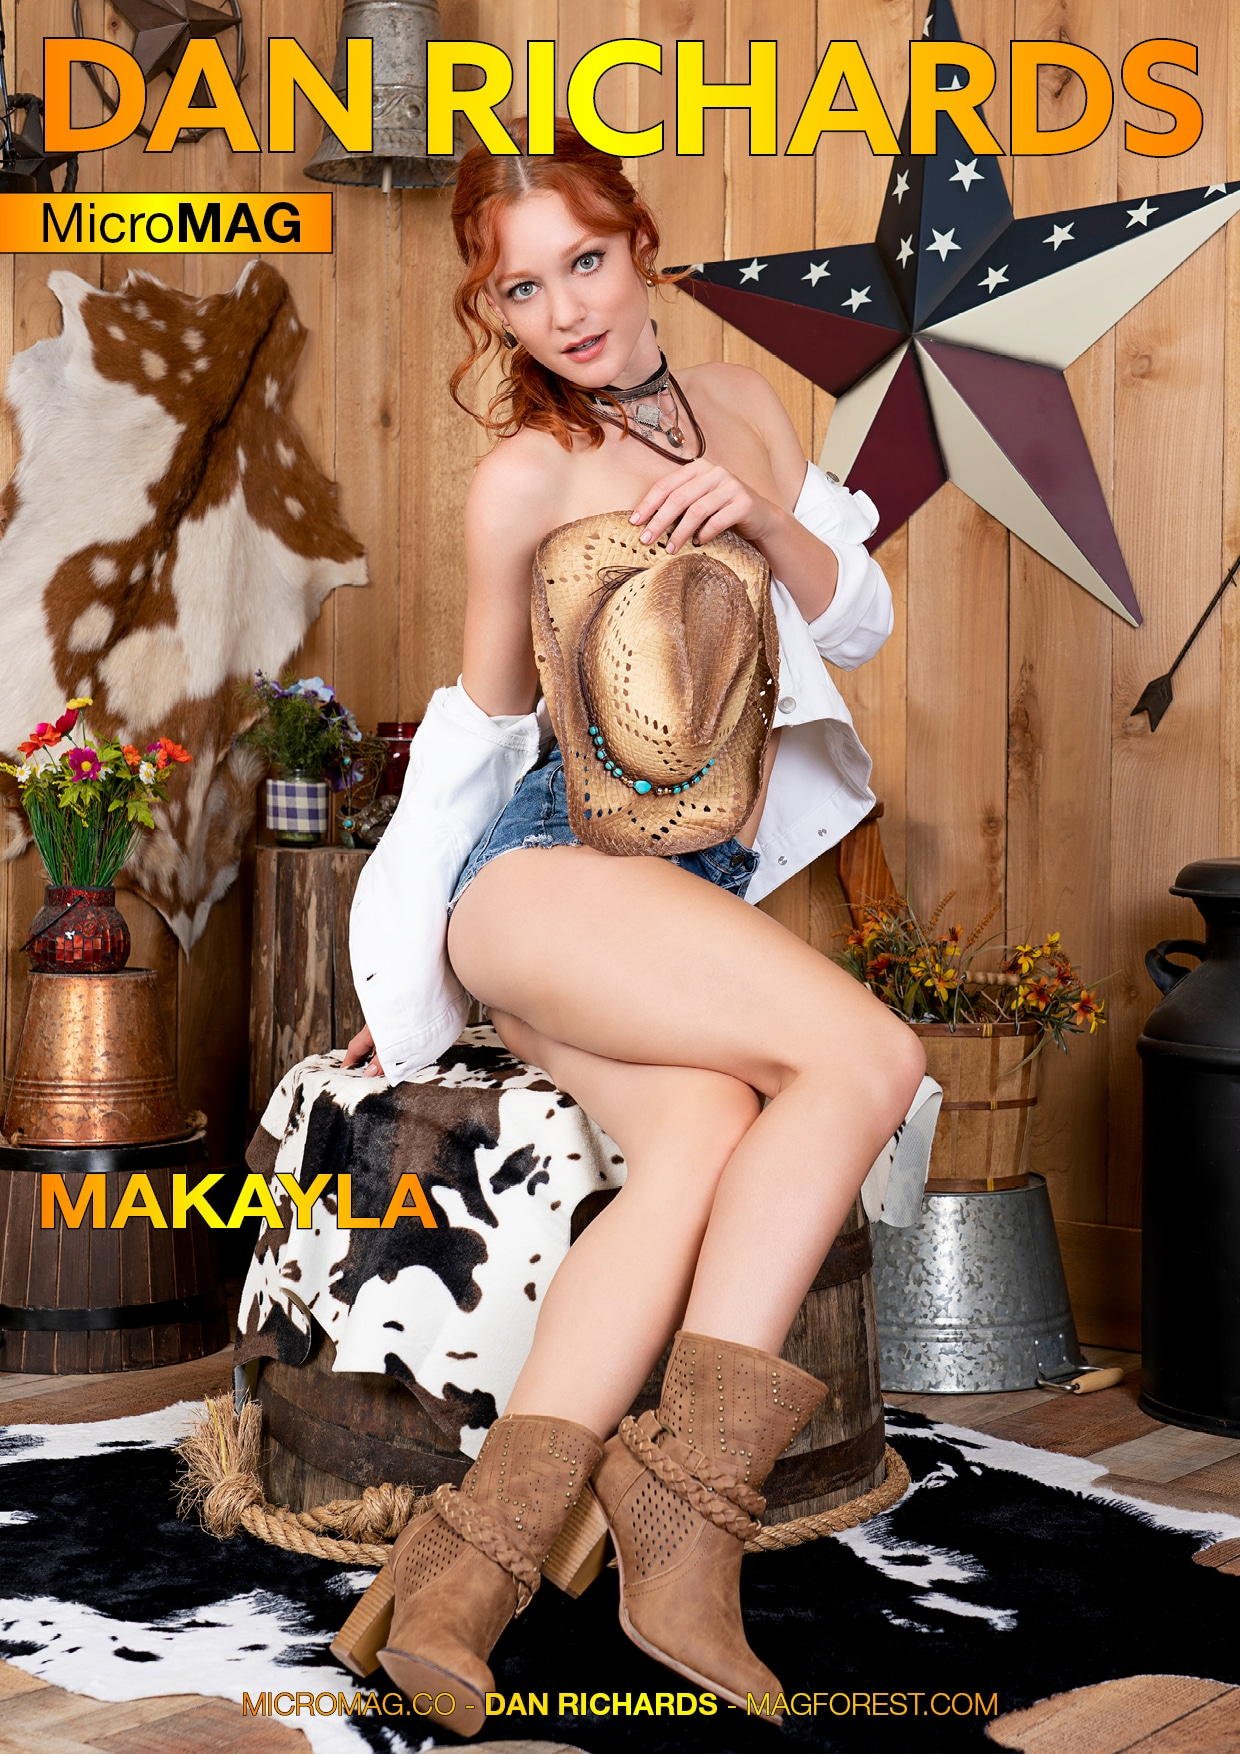 Dan Richards MicroMAG - Makayla - Issue 2 1